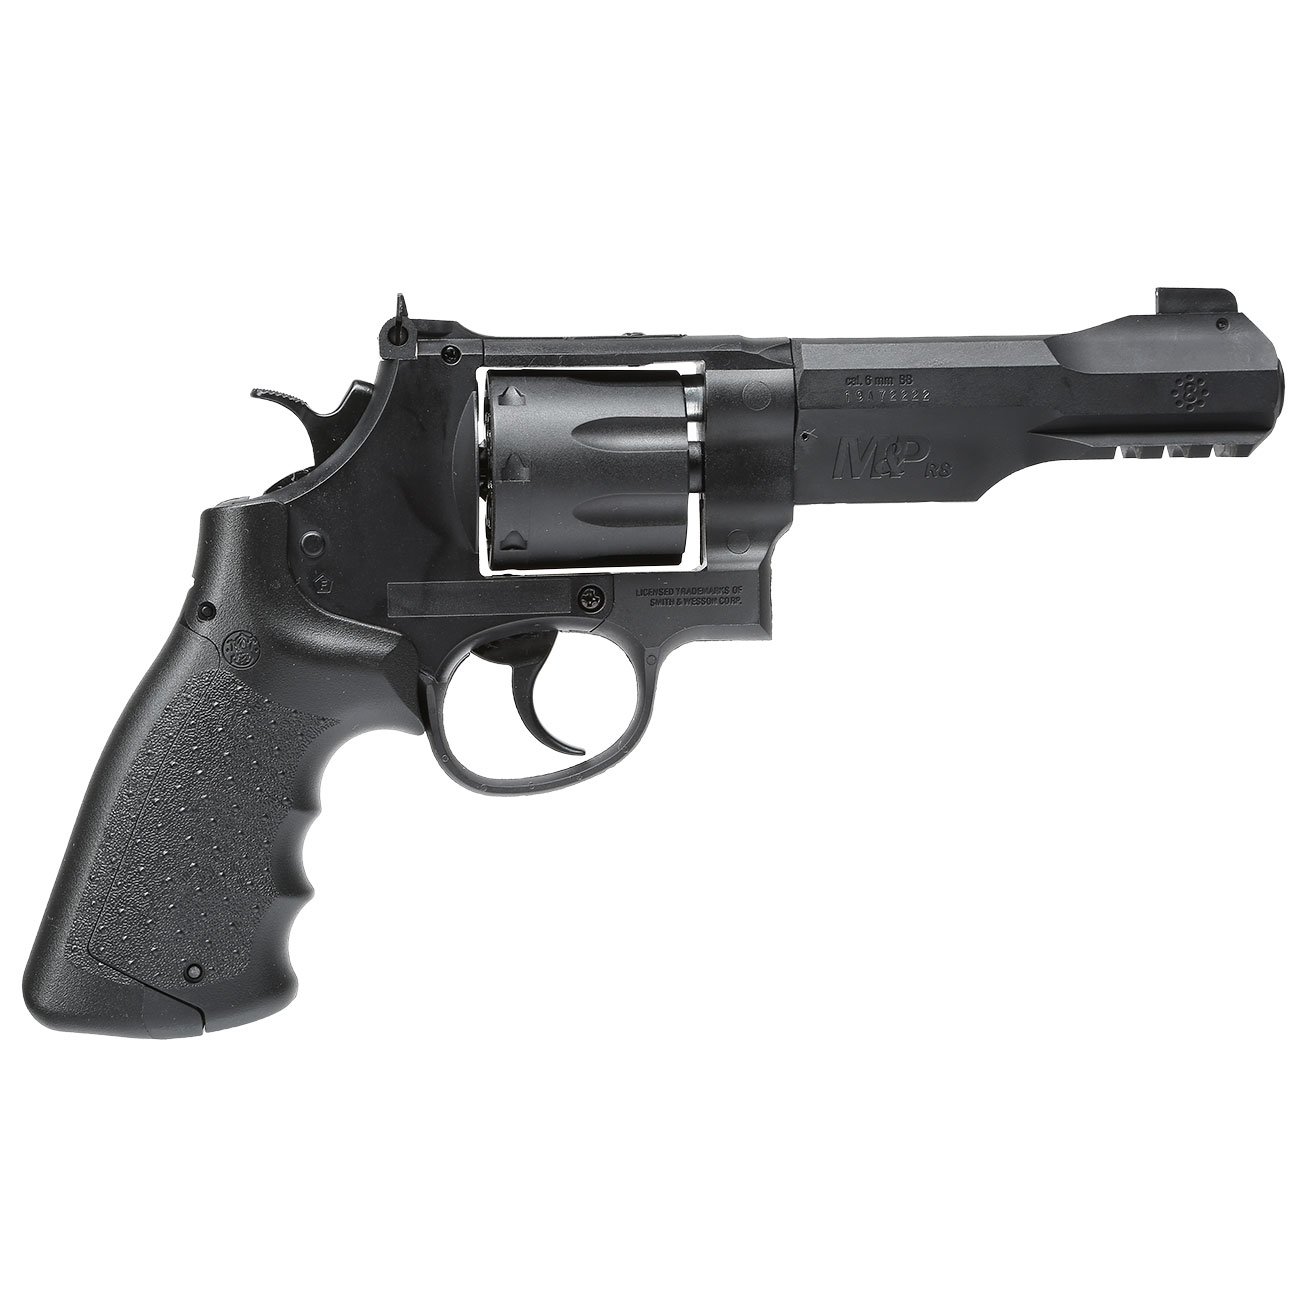 Smith & Wesson M&P R8 4 Zoll CO2 Revolver 6mm BB schwarz 2